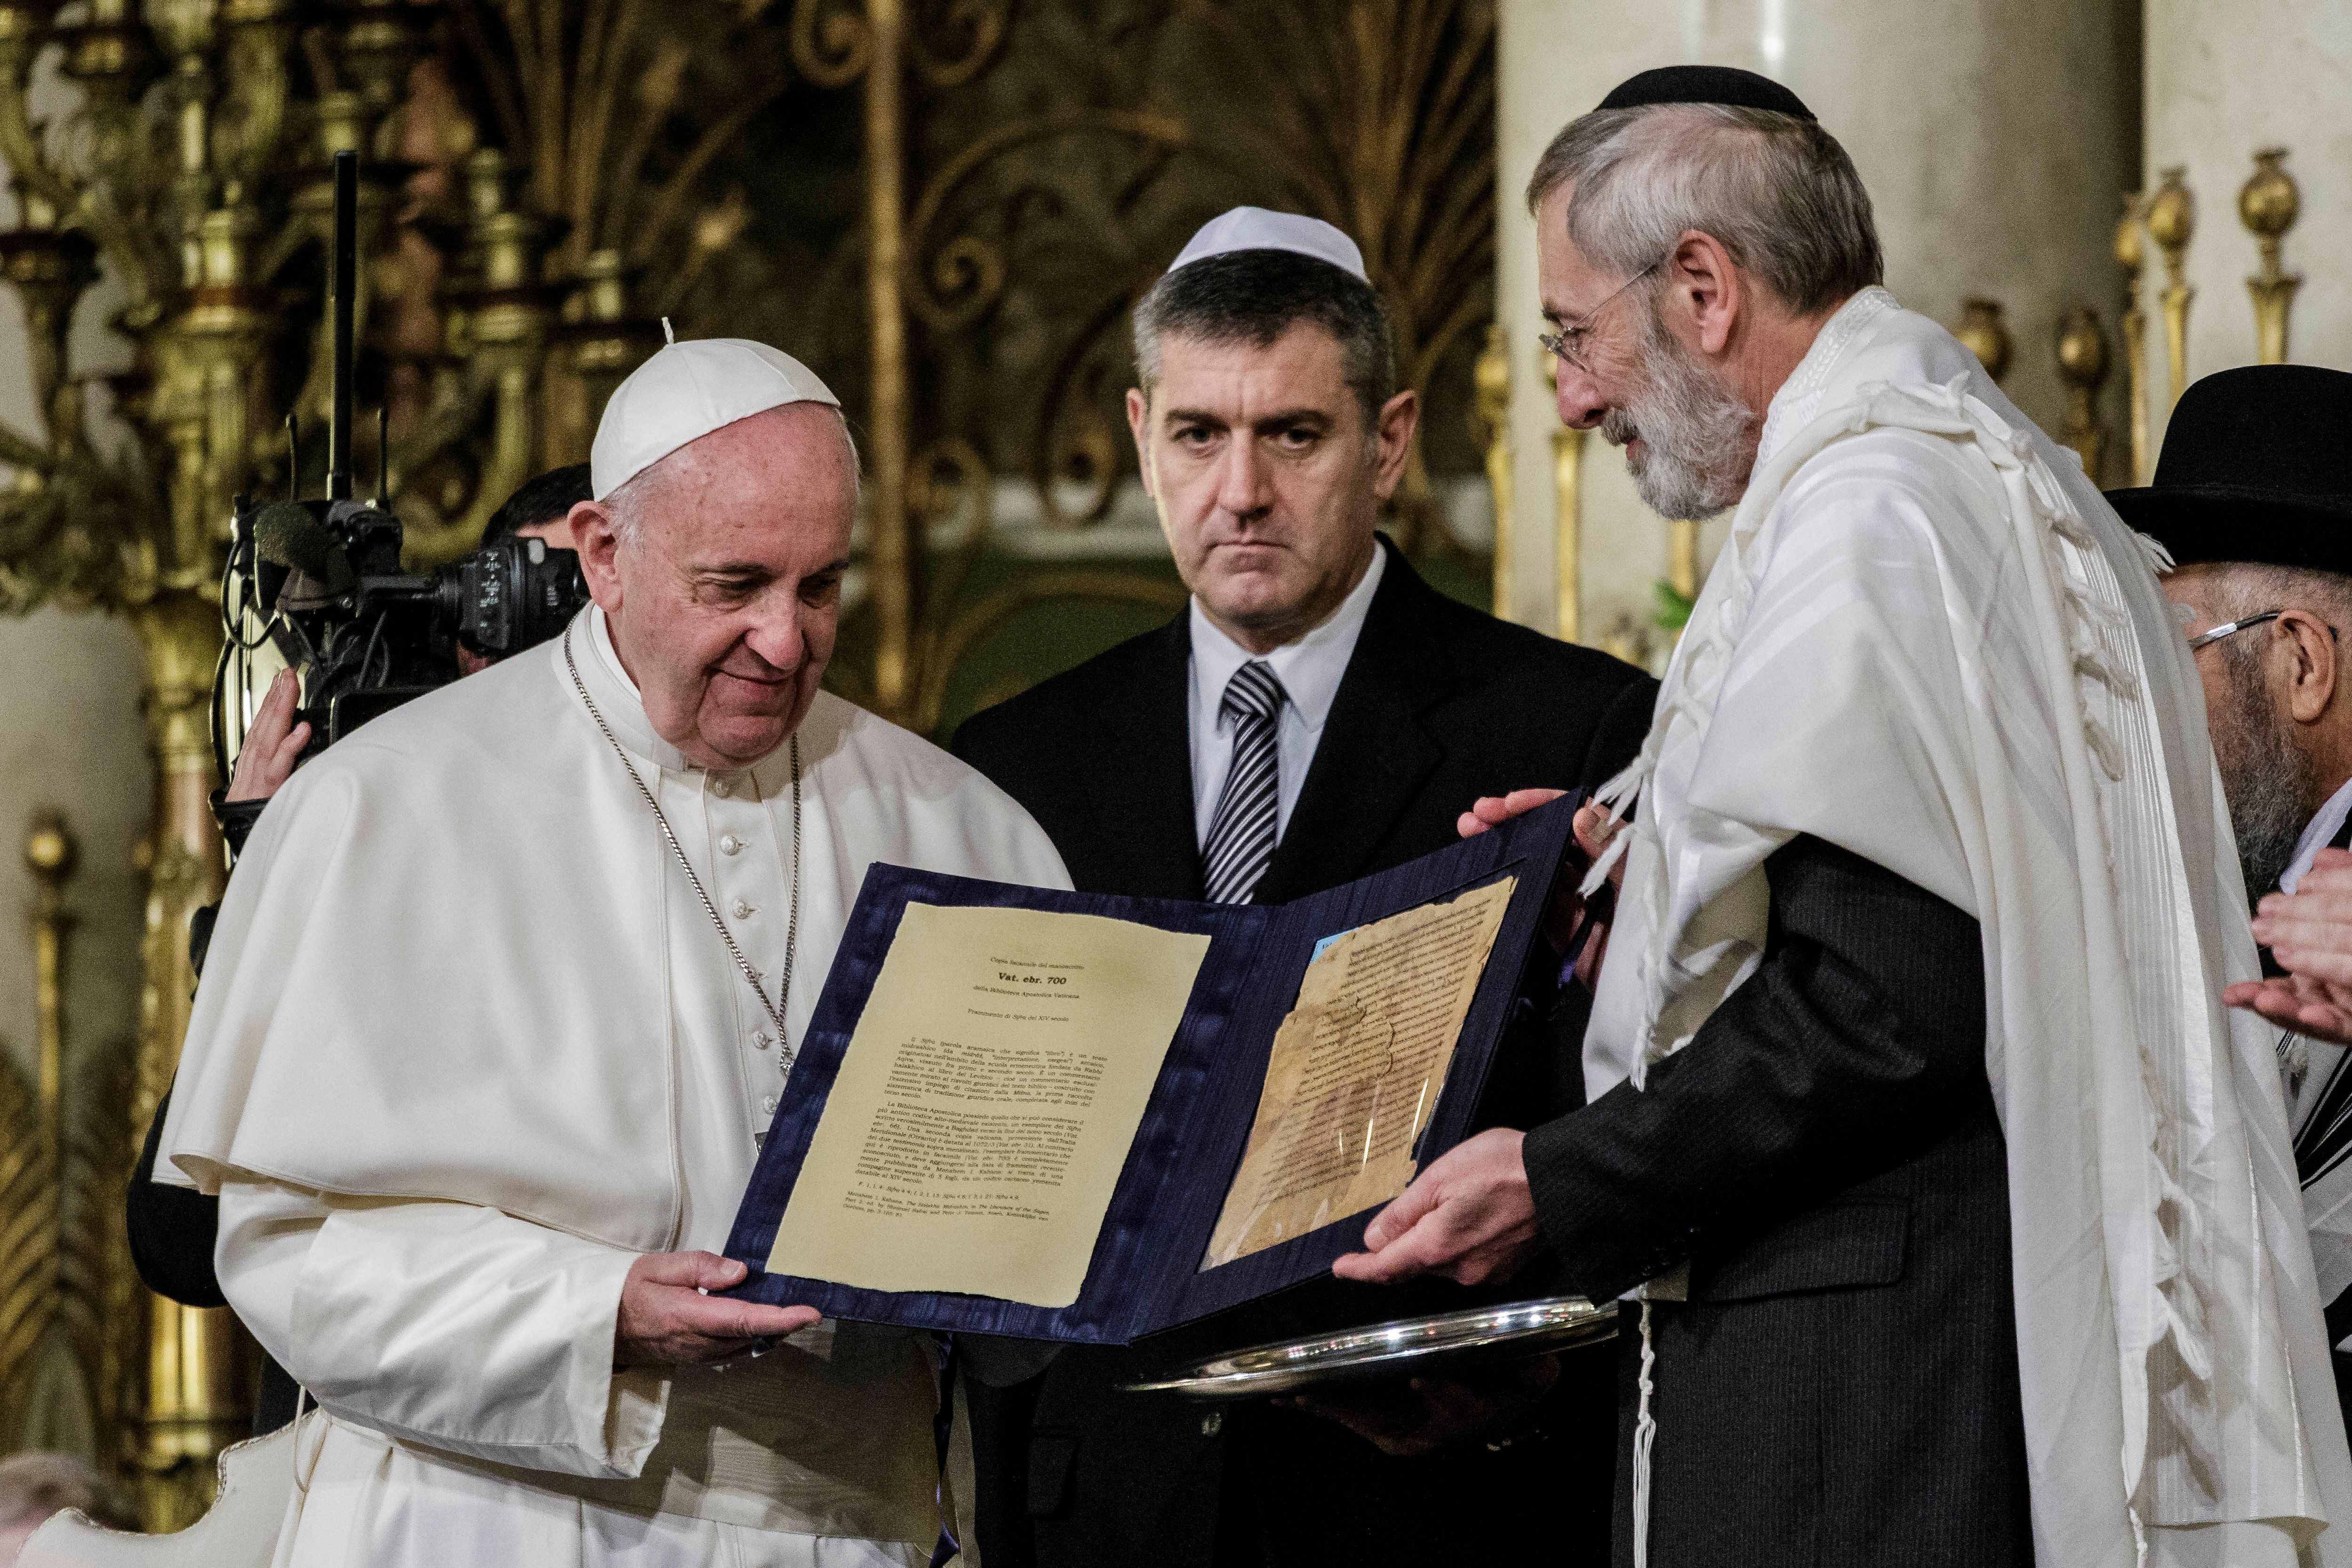 ROME, ITALY - 2016/01/17: Pope Francis shows a gift donated from Rabbi Riccardo Di Segni (R) during his visit to the Great Synagogue of Rome, Italy. (Photo by Giuseppe Ciccia/Pacific Press/LightRocket via Getty Images)